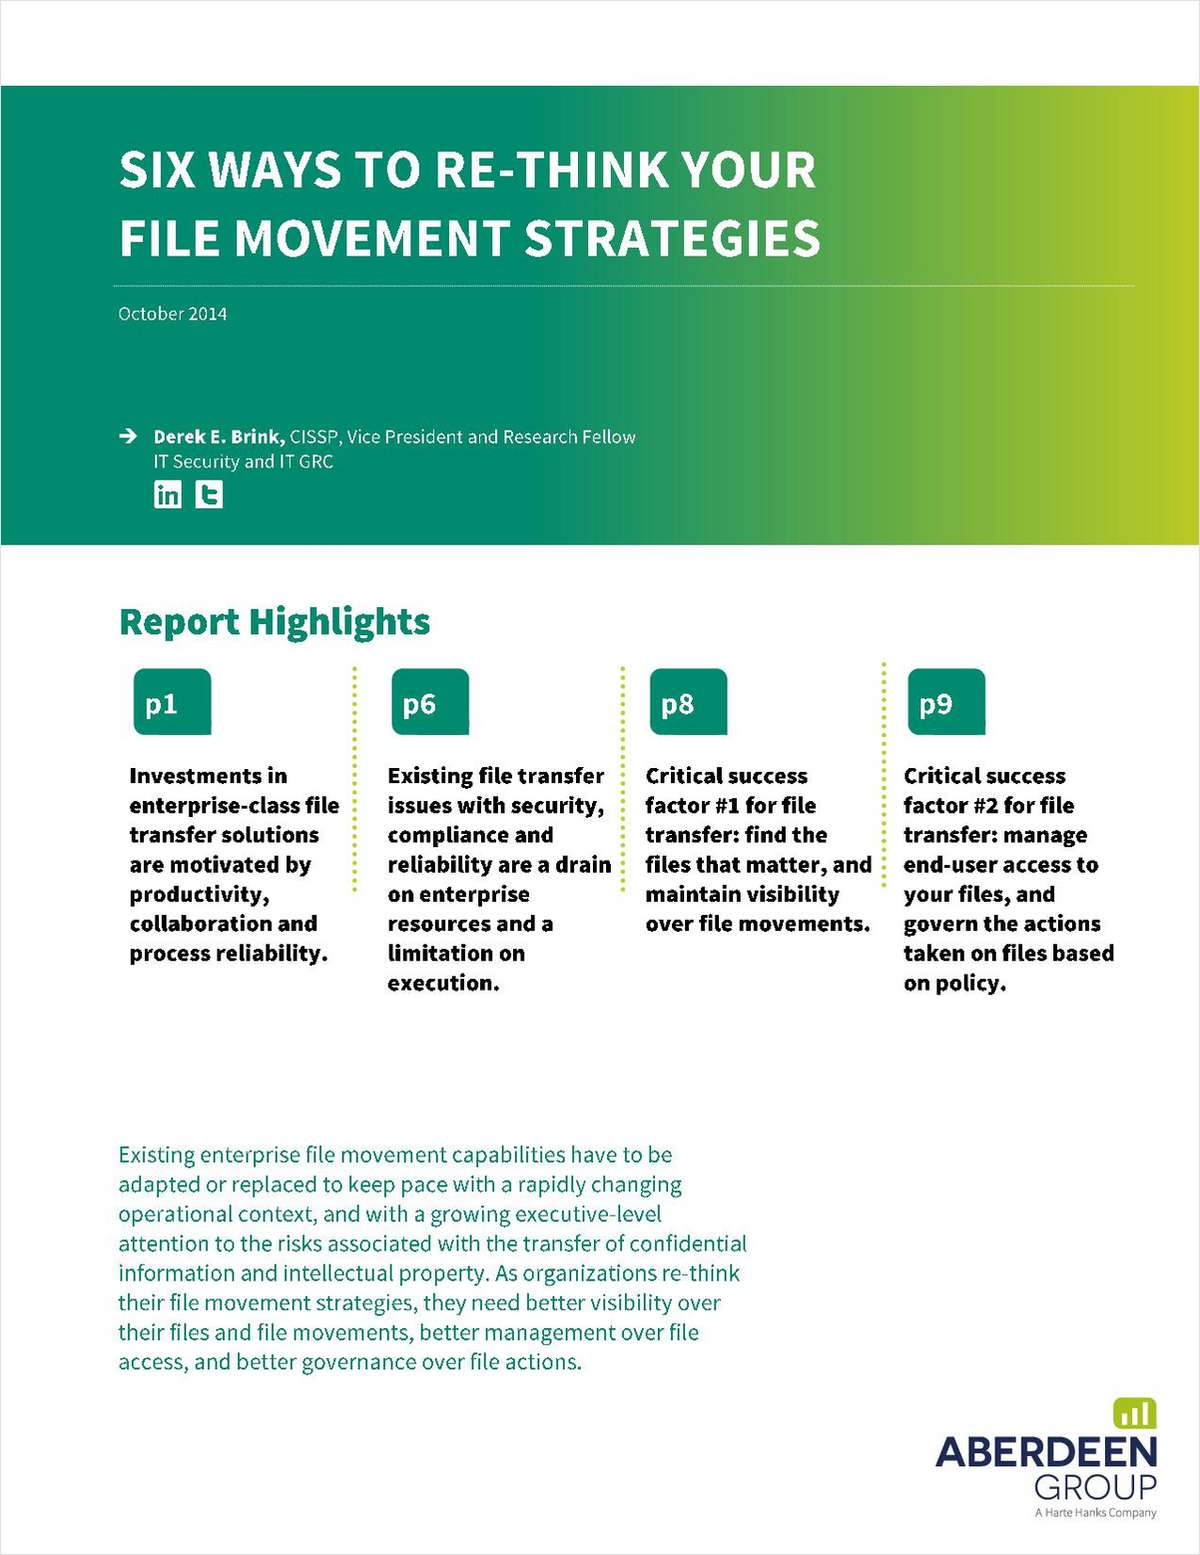 Six Ways To Re-Think Your File Movement Strategies